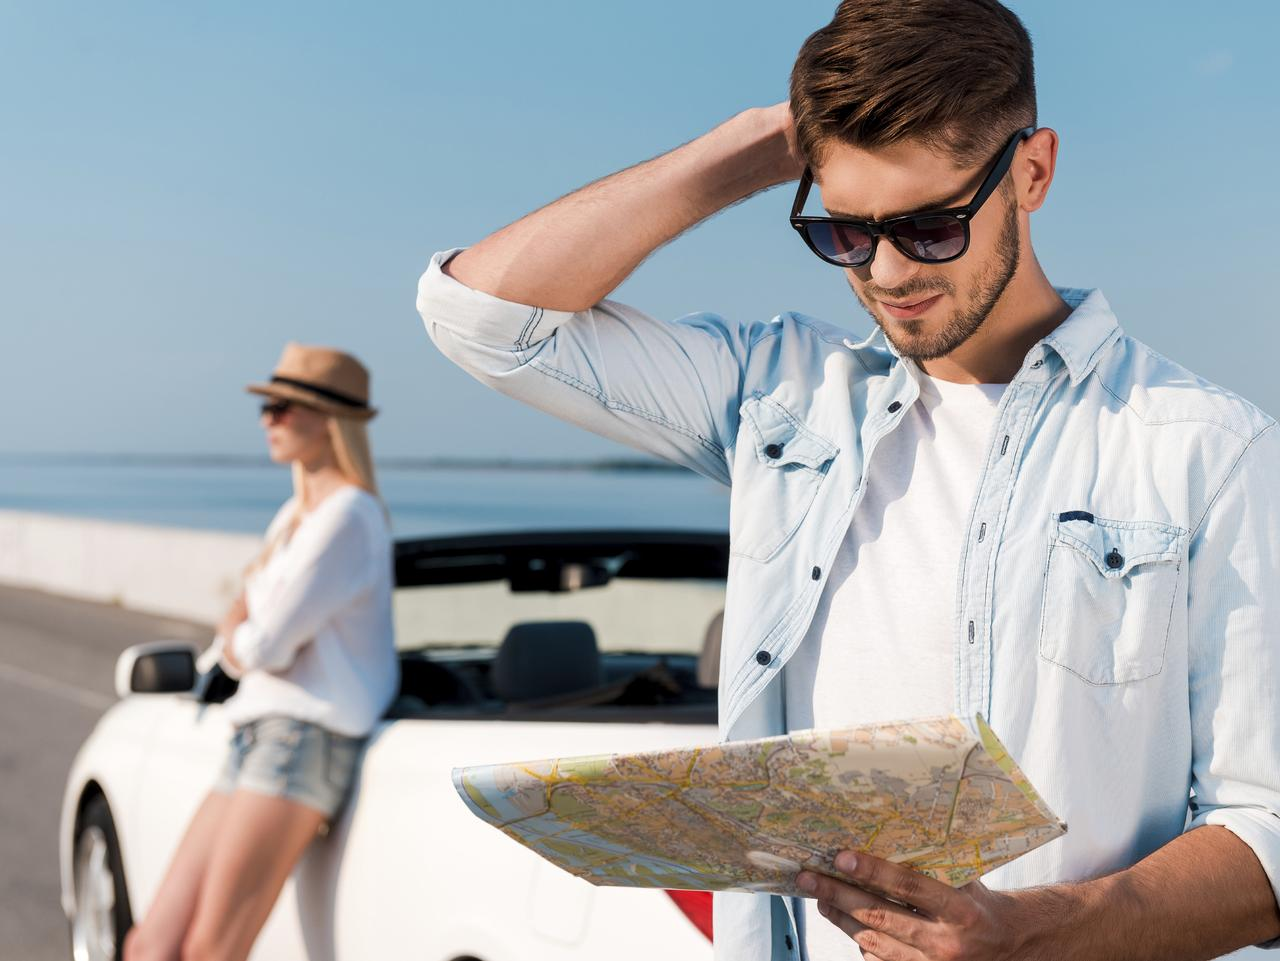 Trying to find their way. Frustrated young man examining map while his girlfriend leaning at their white convertible in the background. For Rod Chester column